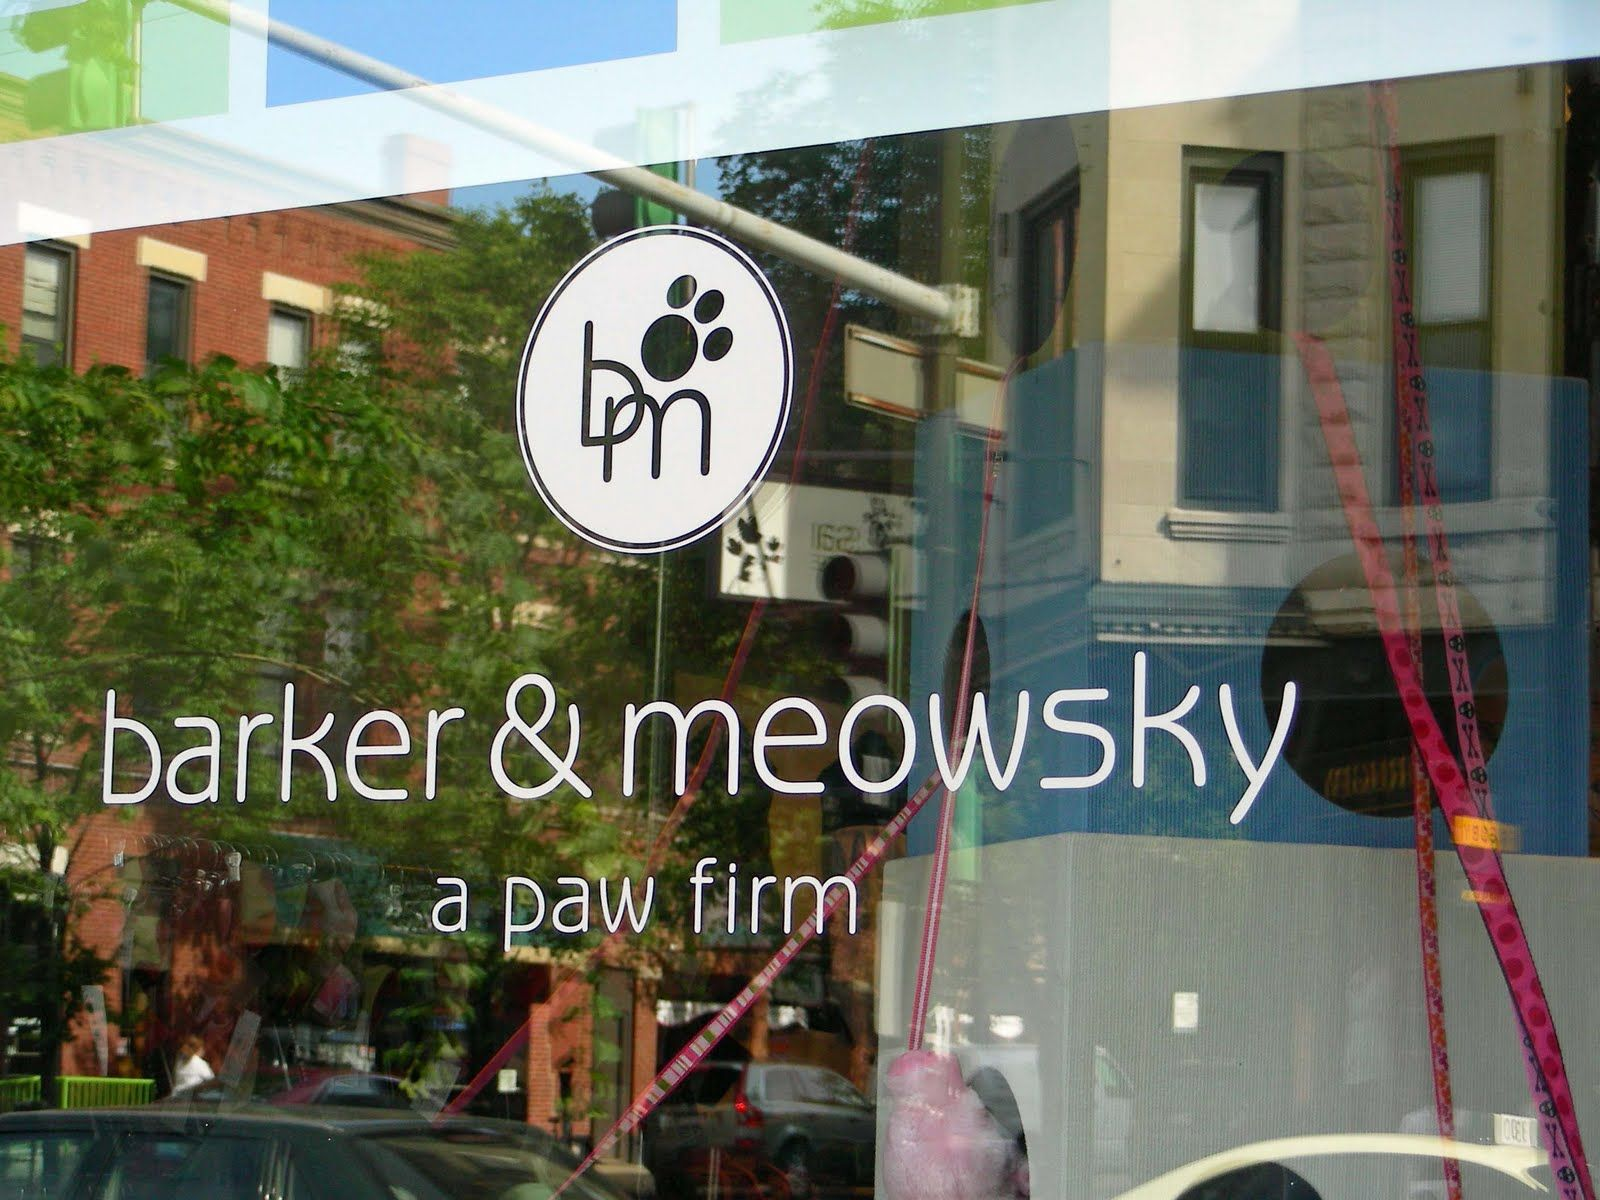 Barker & Meowsky A Paw Firm. Great window and business